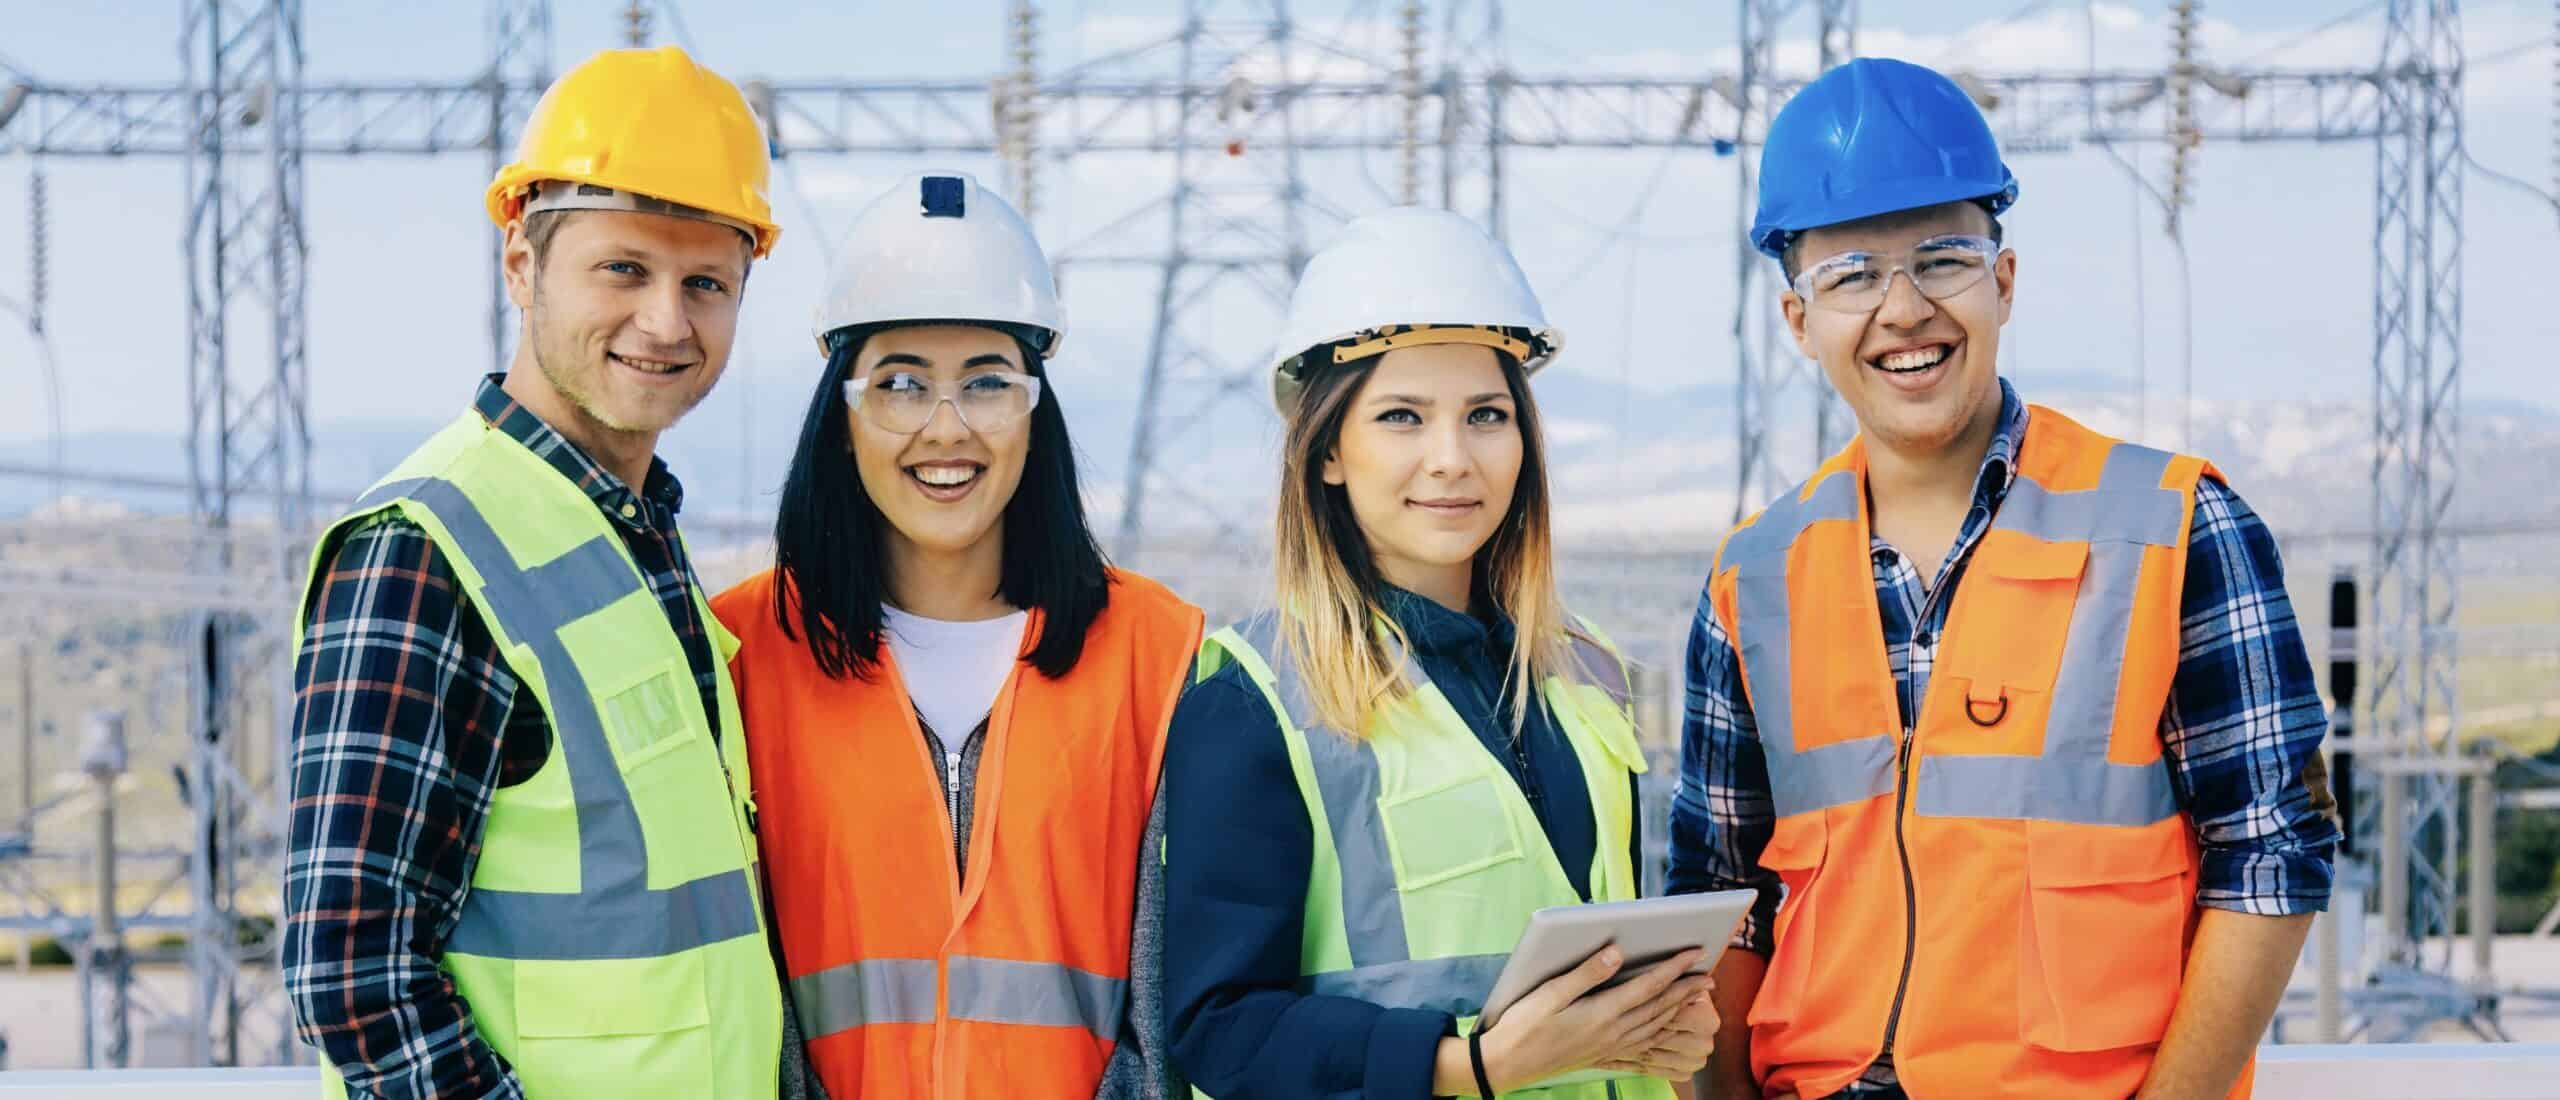 electrical engineering jobs join our team hero